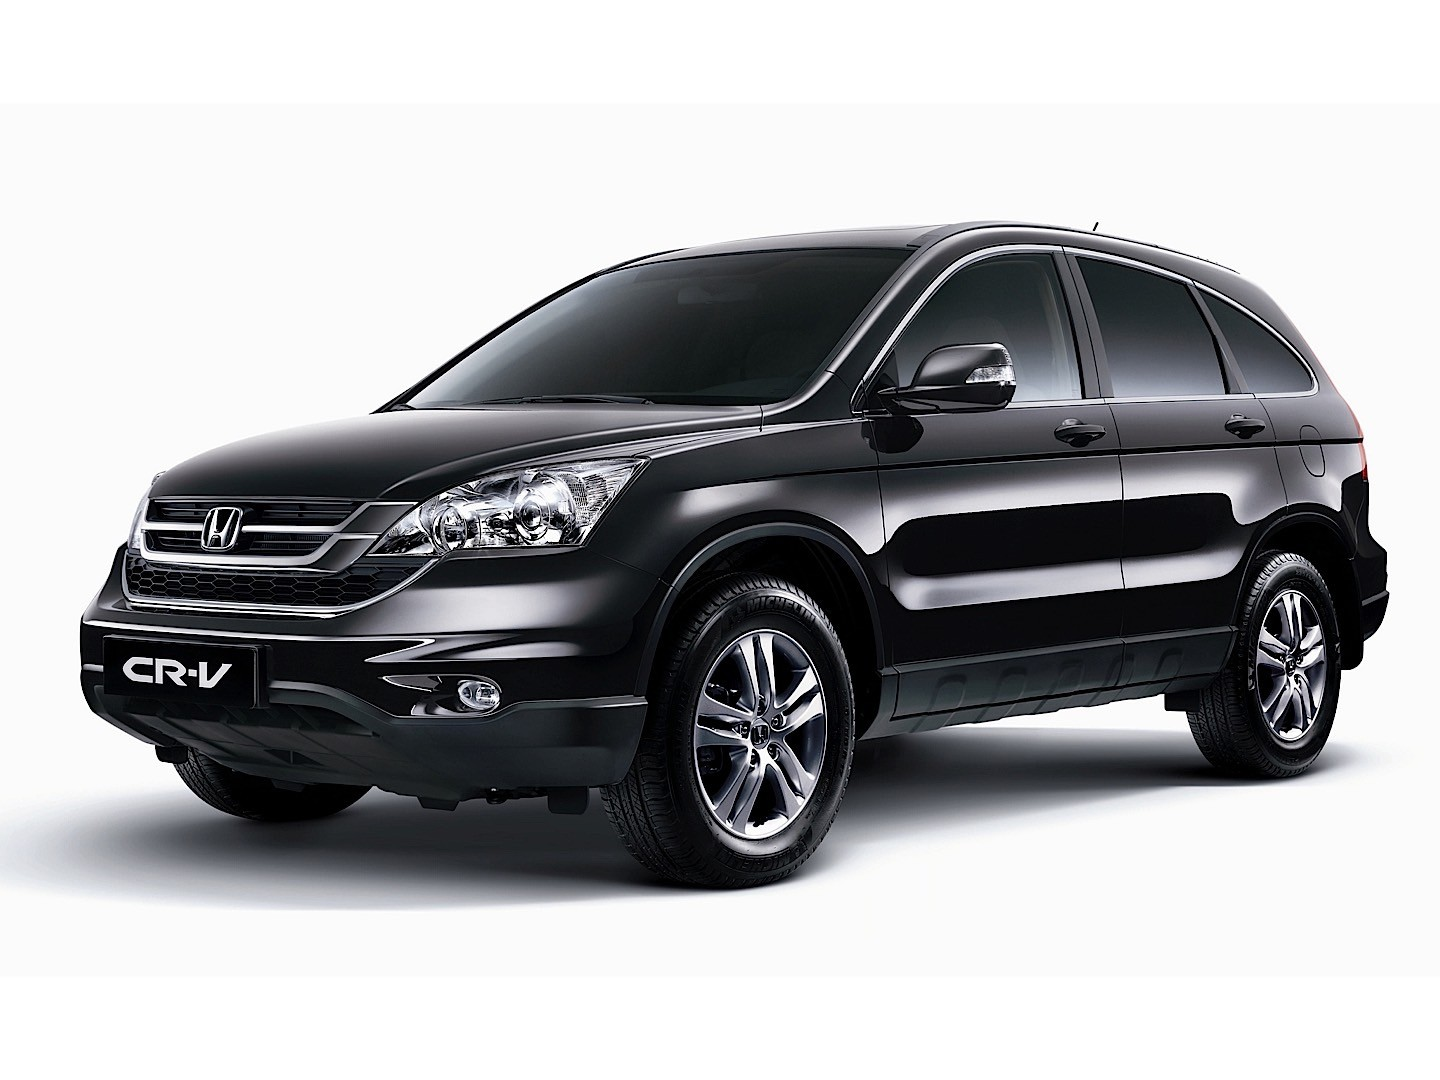 2010 honda cr v photos informations articles. Black Bedroom Furniture Sets. Home Design Ideas